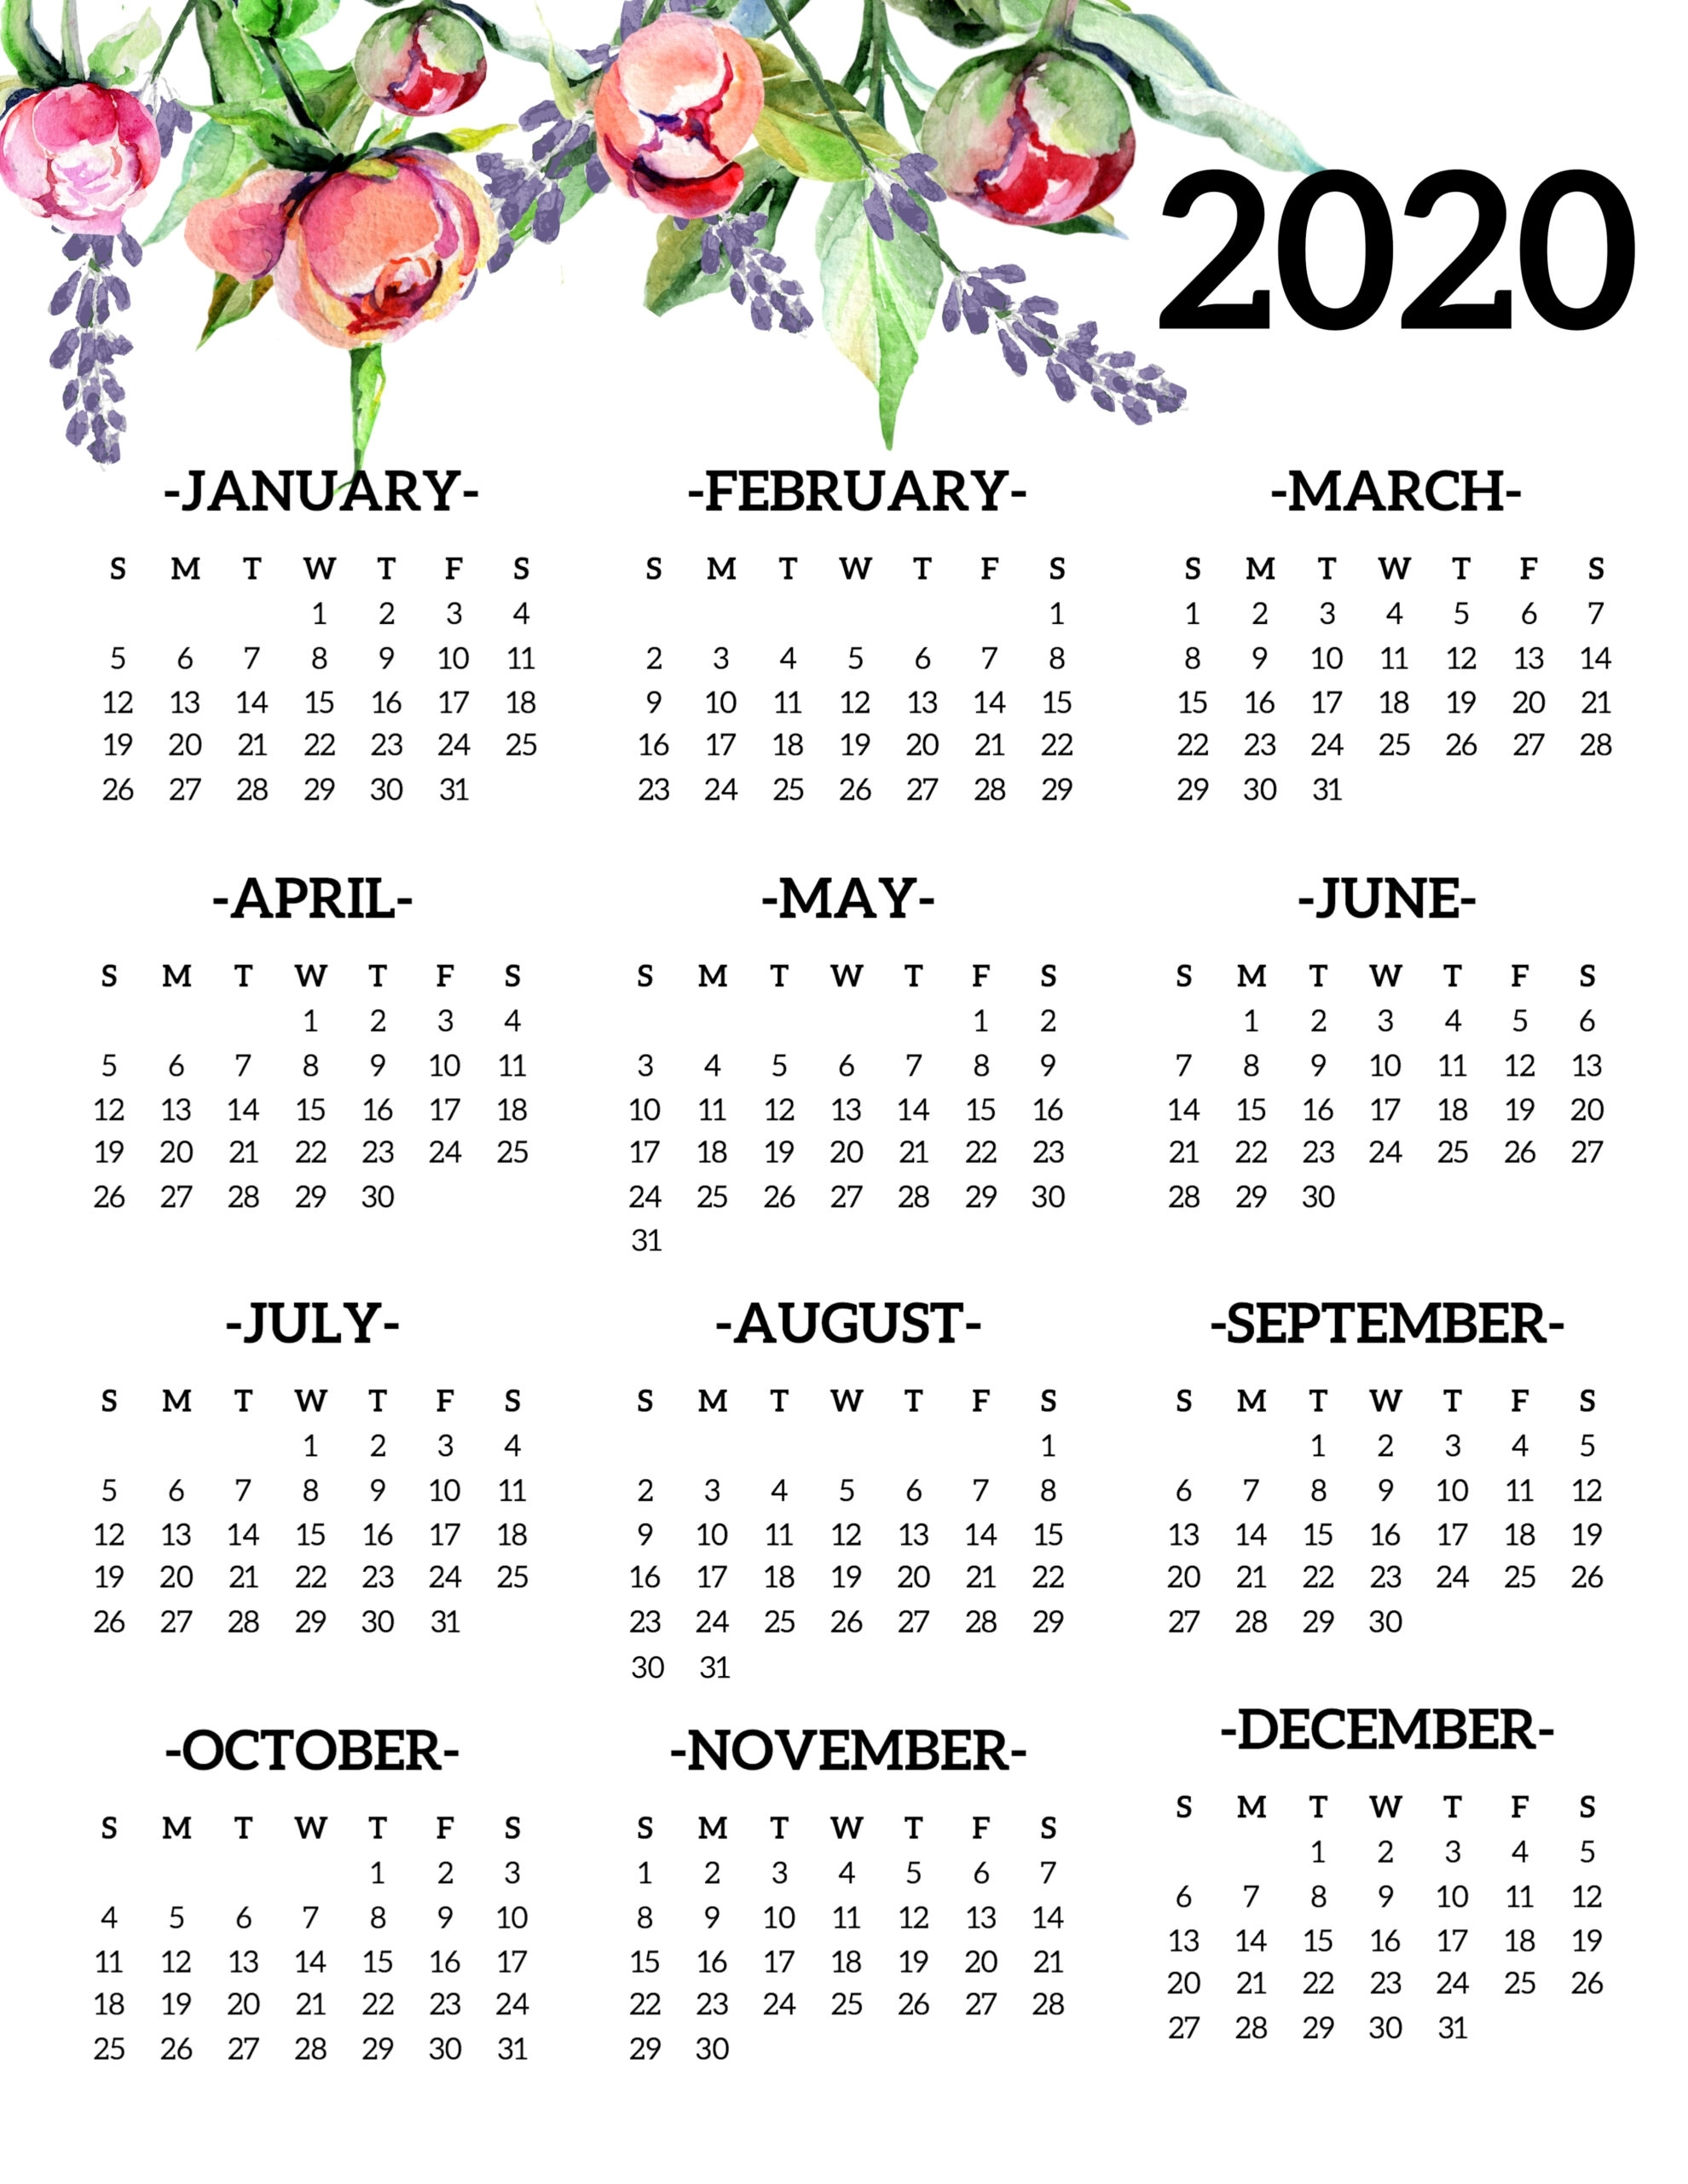 Free Printable 2020 Calendar Yearly One Page Floral - Paper regarding Printable 2020 Calendar Year At A Glance